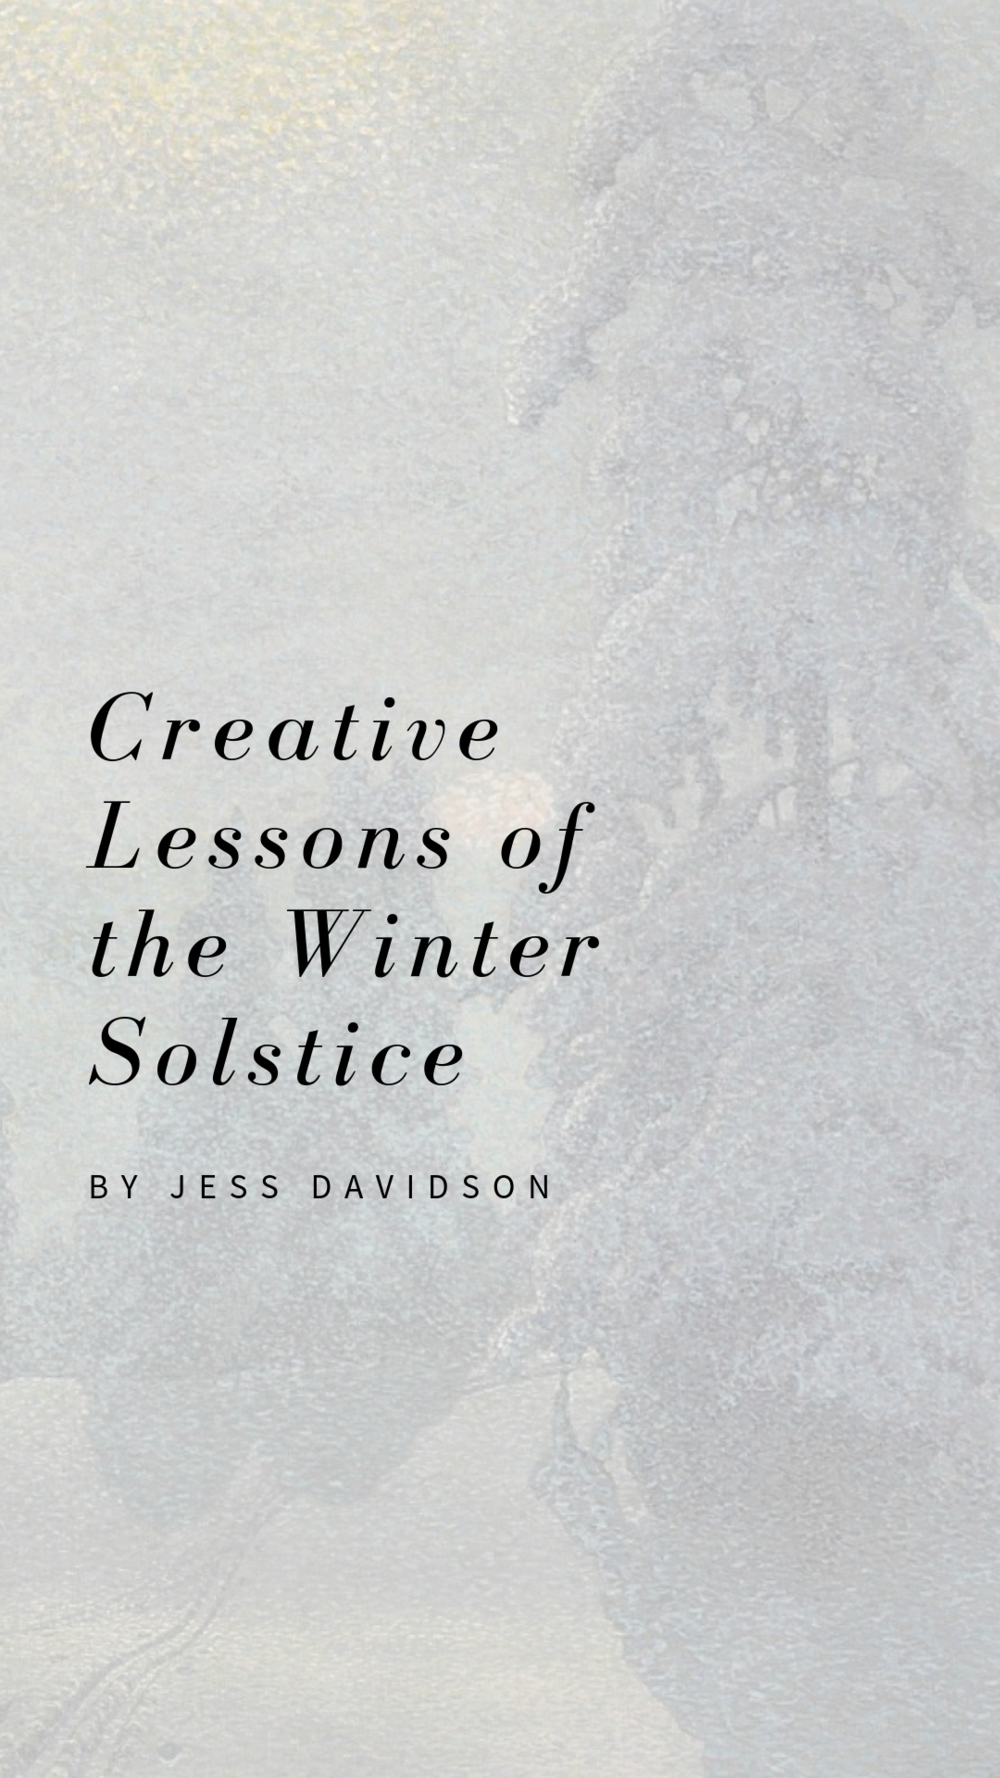 """Creative Lessons of the Winter Solstice: On the Wheel of the Year and Creative Recovery. Written by Jess Davidson. Painting: """"Untitled"""" by Gustaf Fjaestad."""